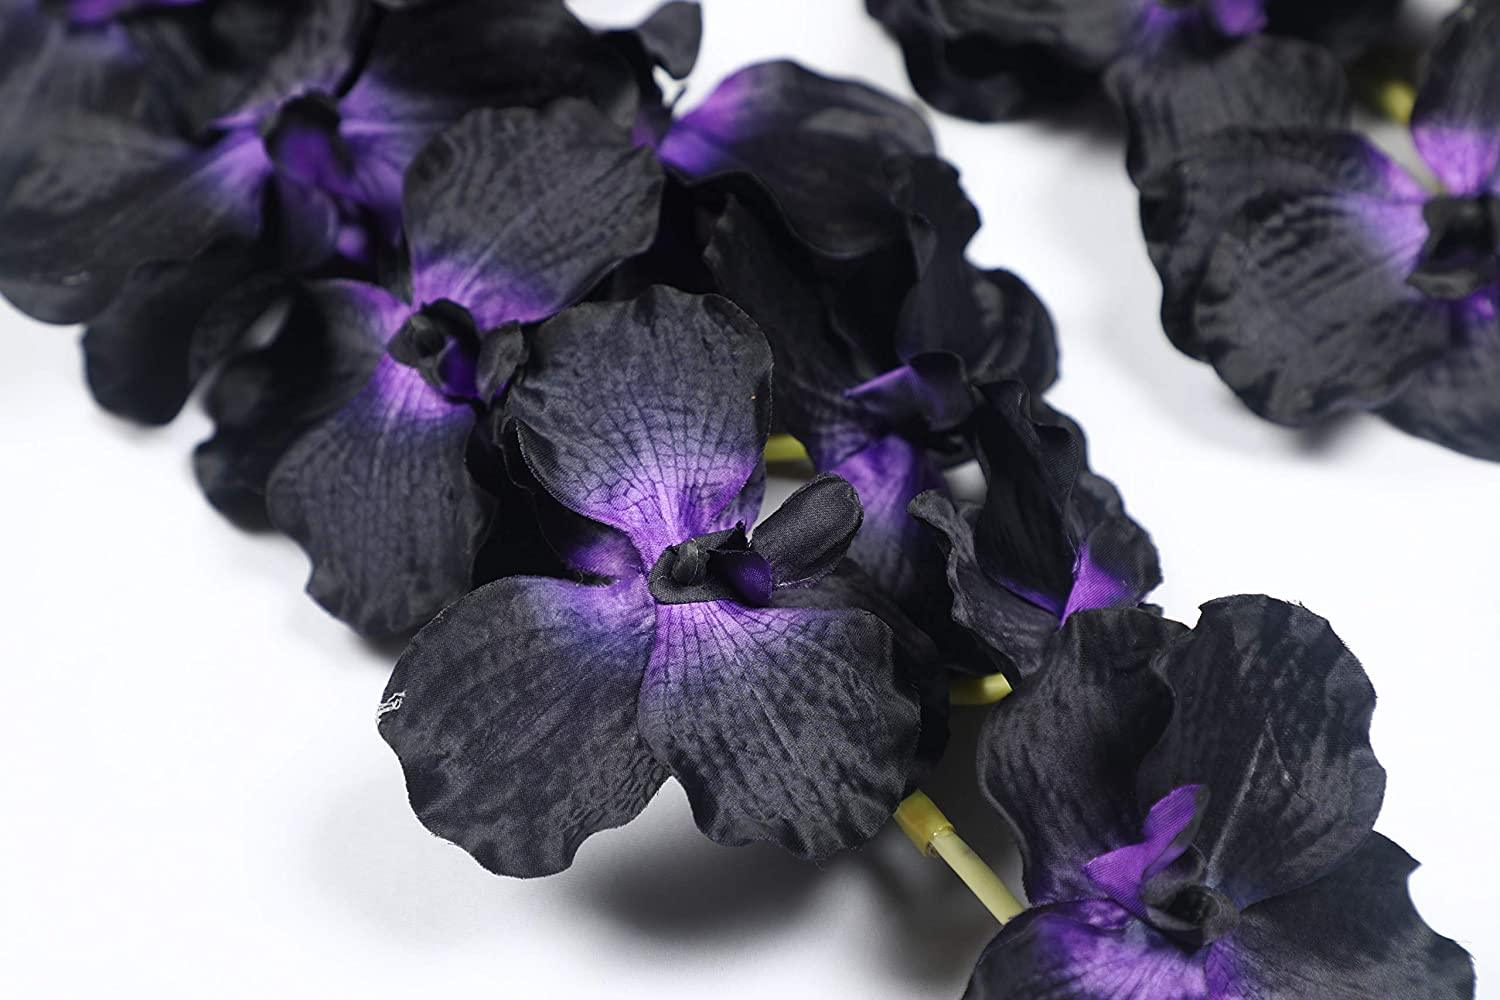 Pollination Stunning Black Vanda Orchid Flower (Pack of 2) - Artificial Flowers & Plants - PolliNation